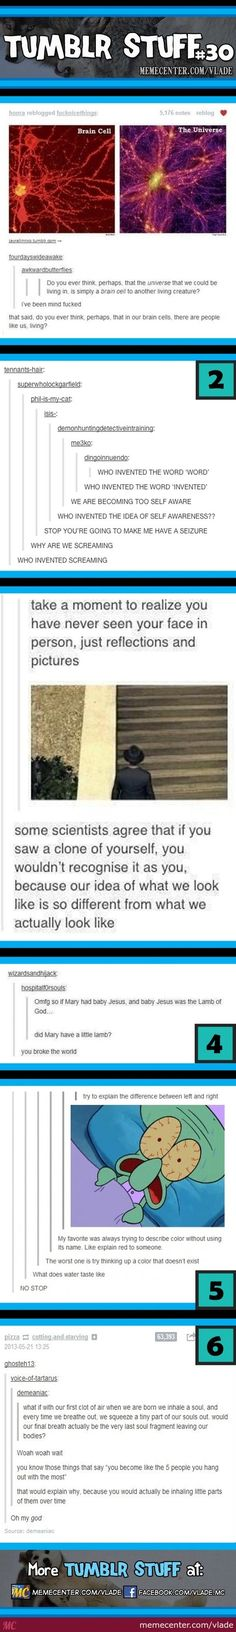 Makes you think